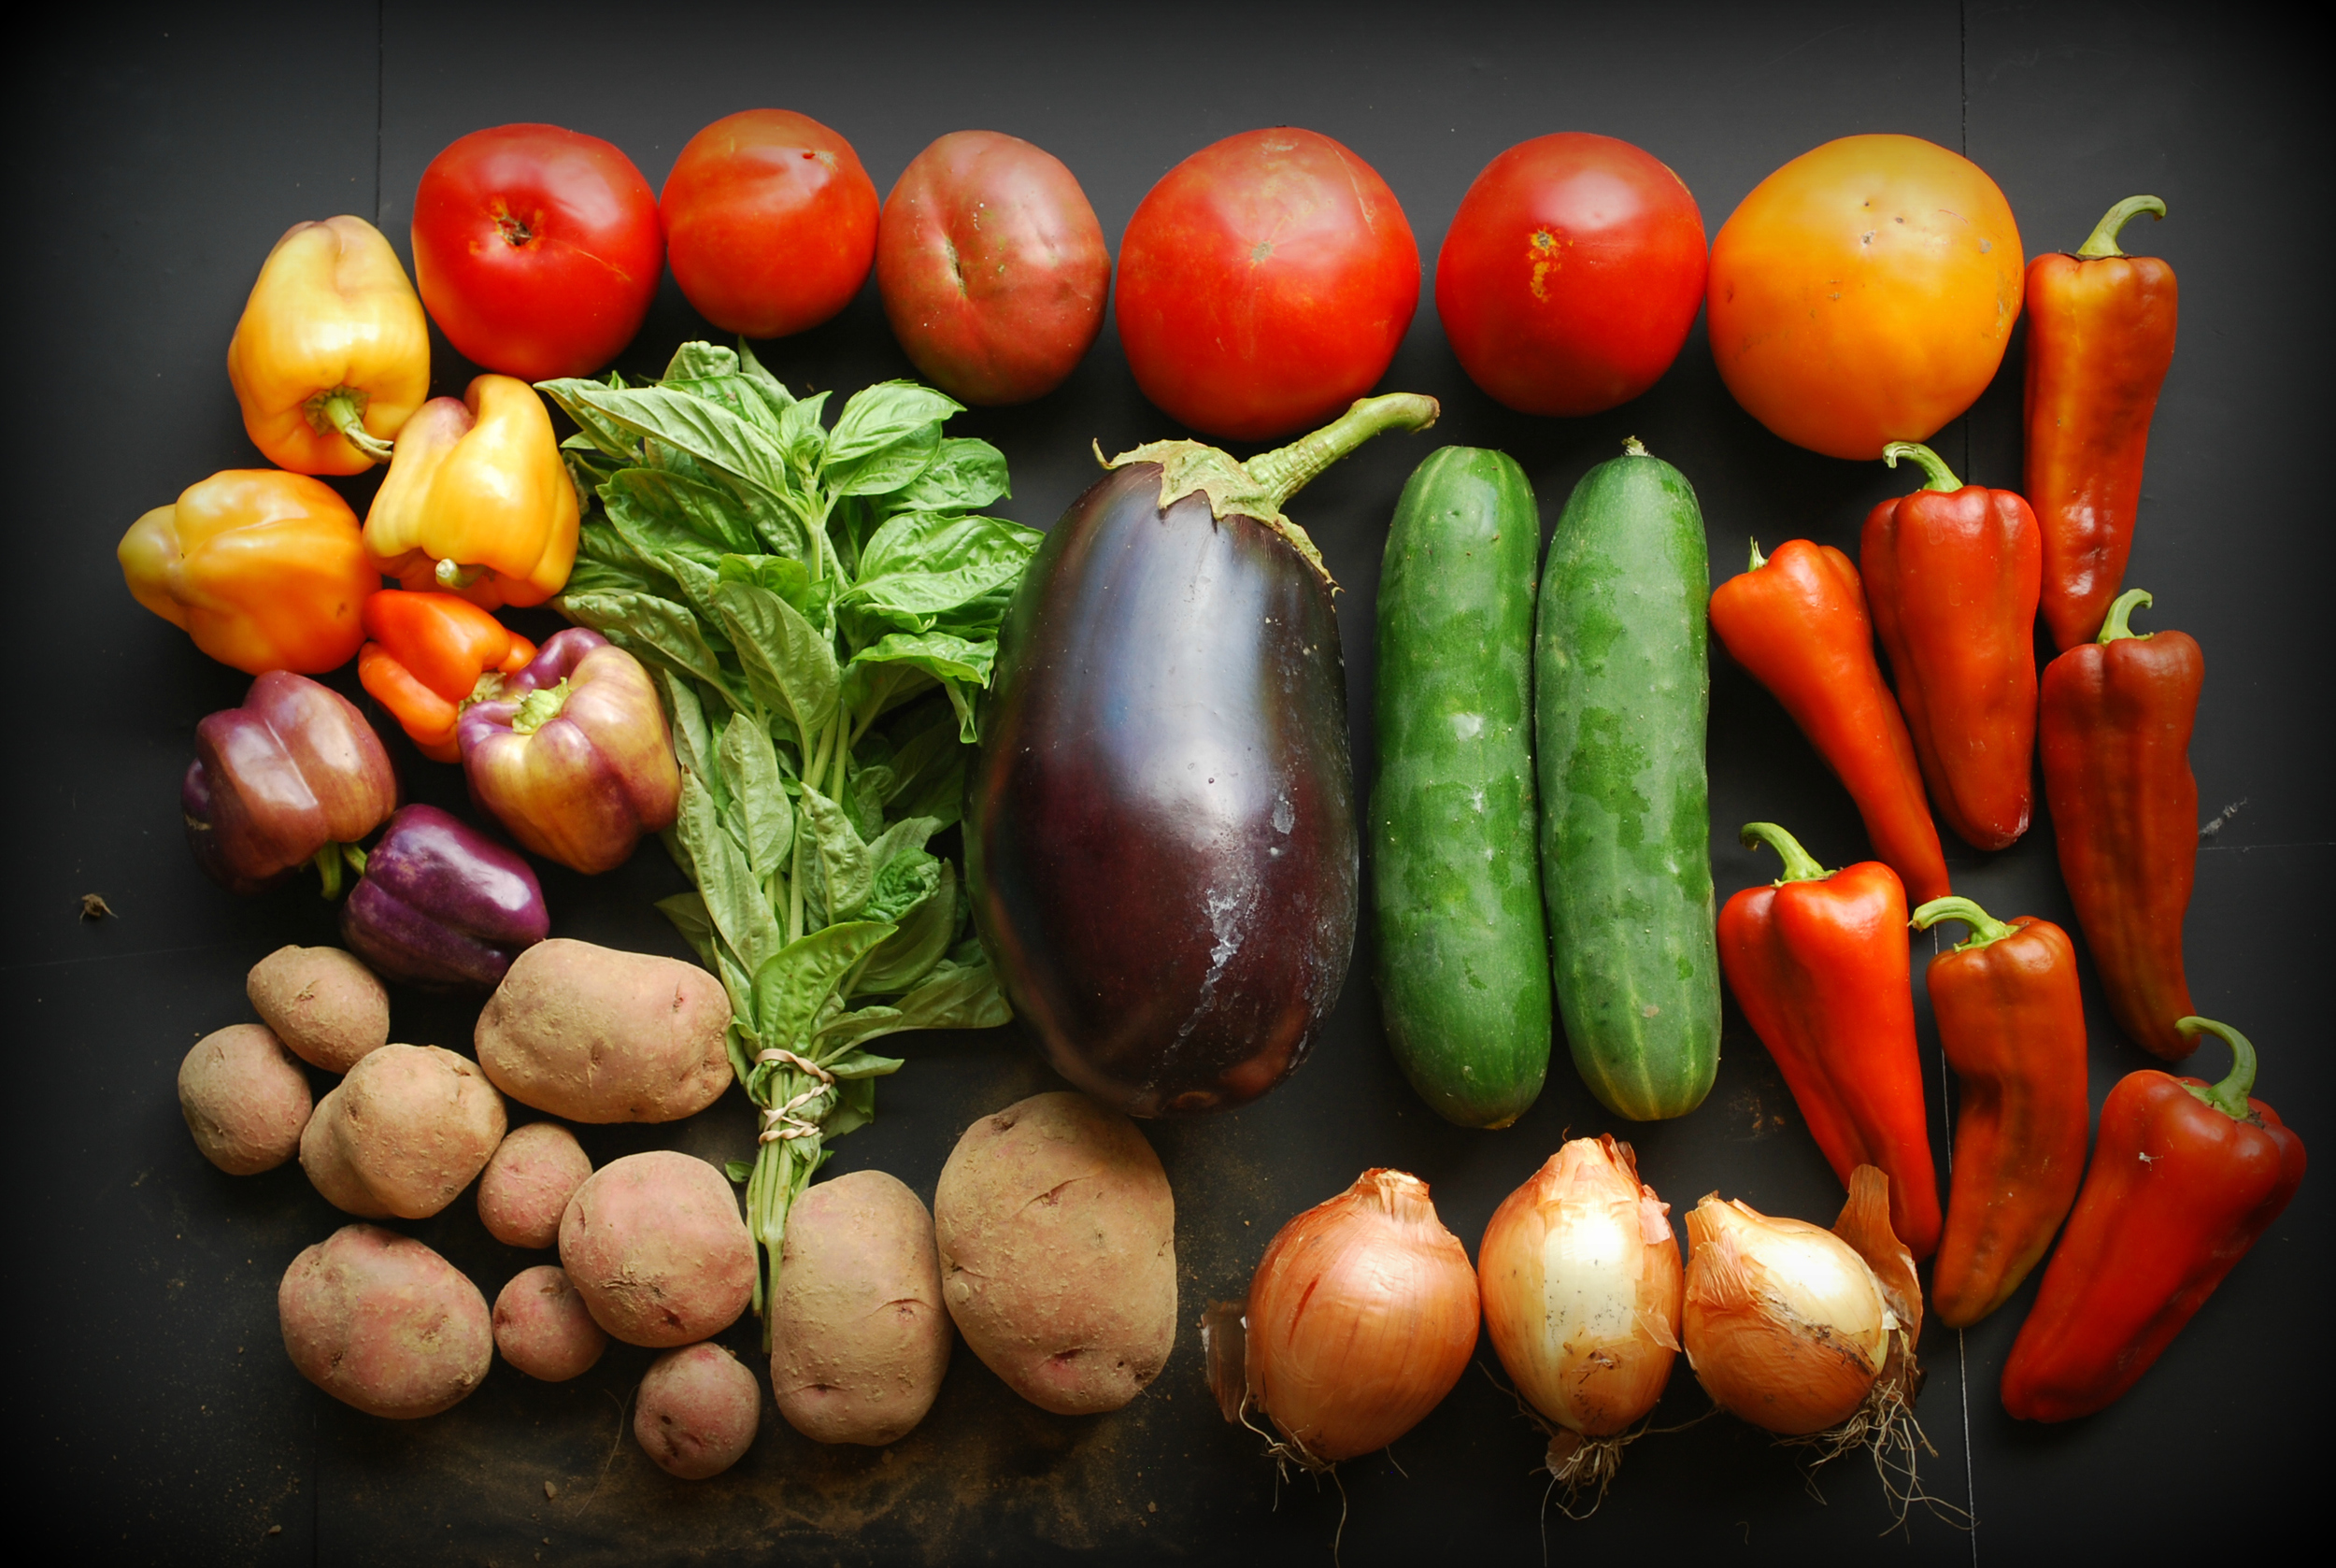 Potatoes, slicing tomatoes, Italian roasting peppers, yellow onions, cucumber, eggplant, bell peppers, basil